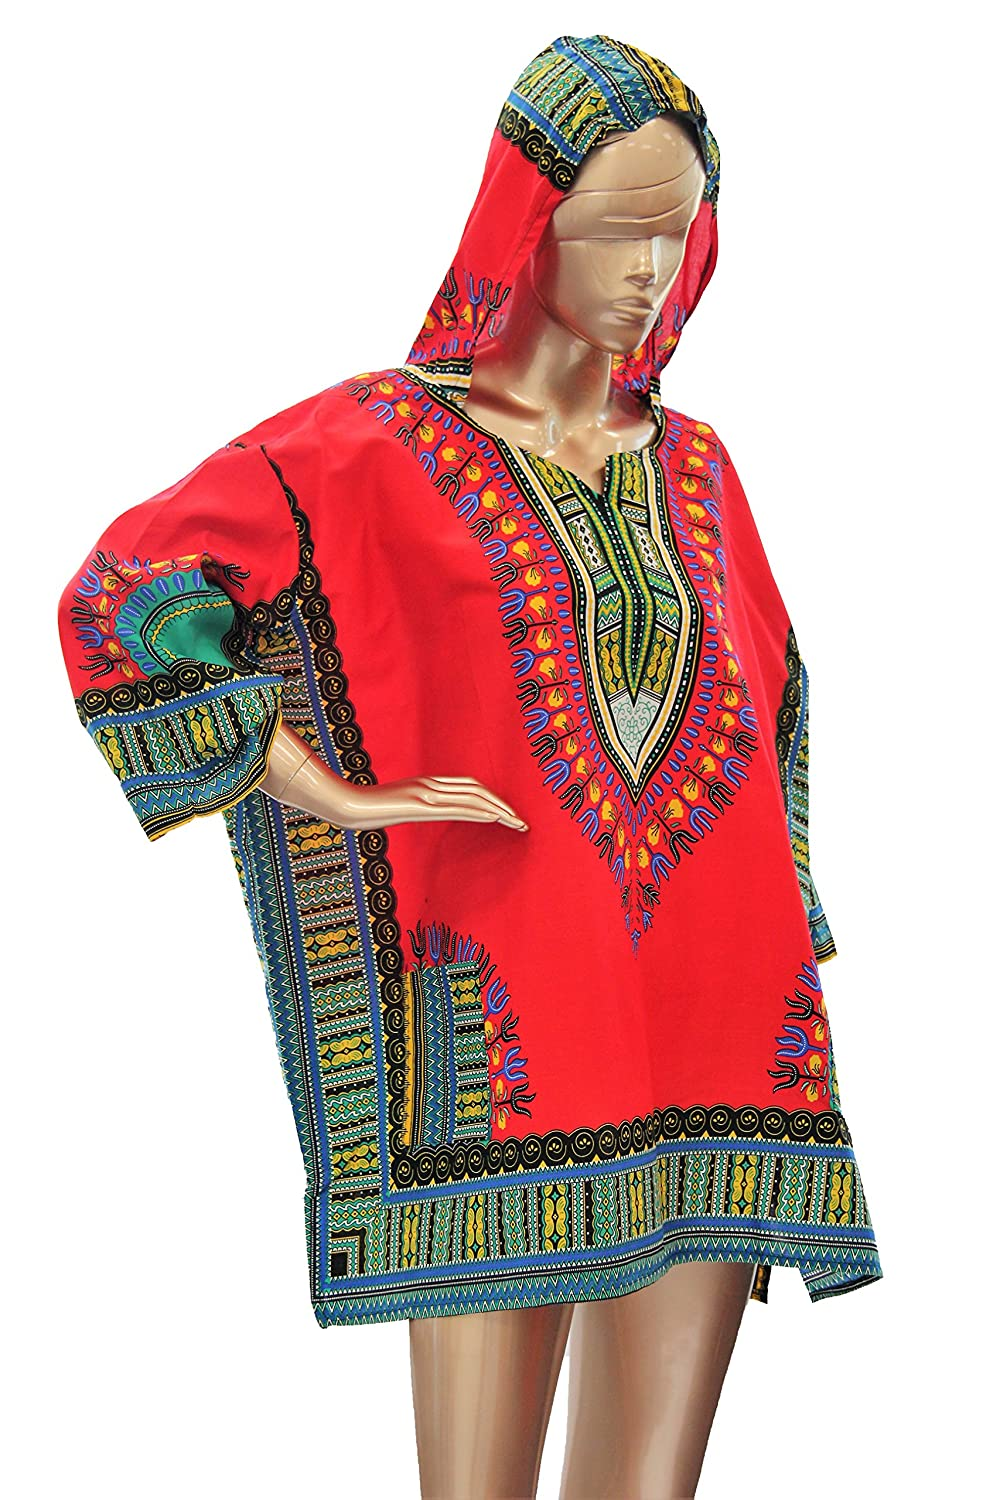 Dashiki Top African Print Hooded 3/4 Sleeve Plus Size Dashiki Women Top 79 17046-1